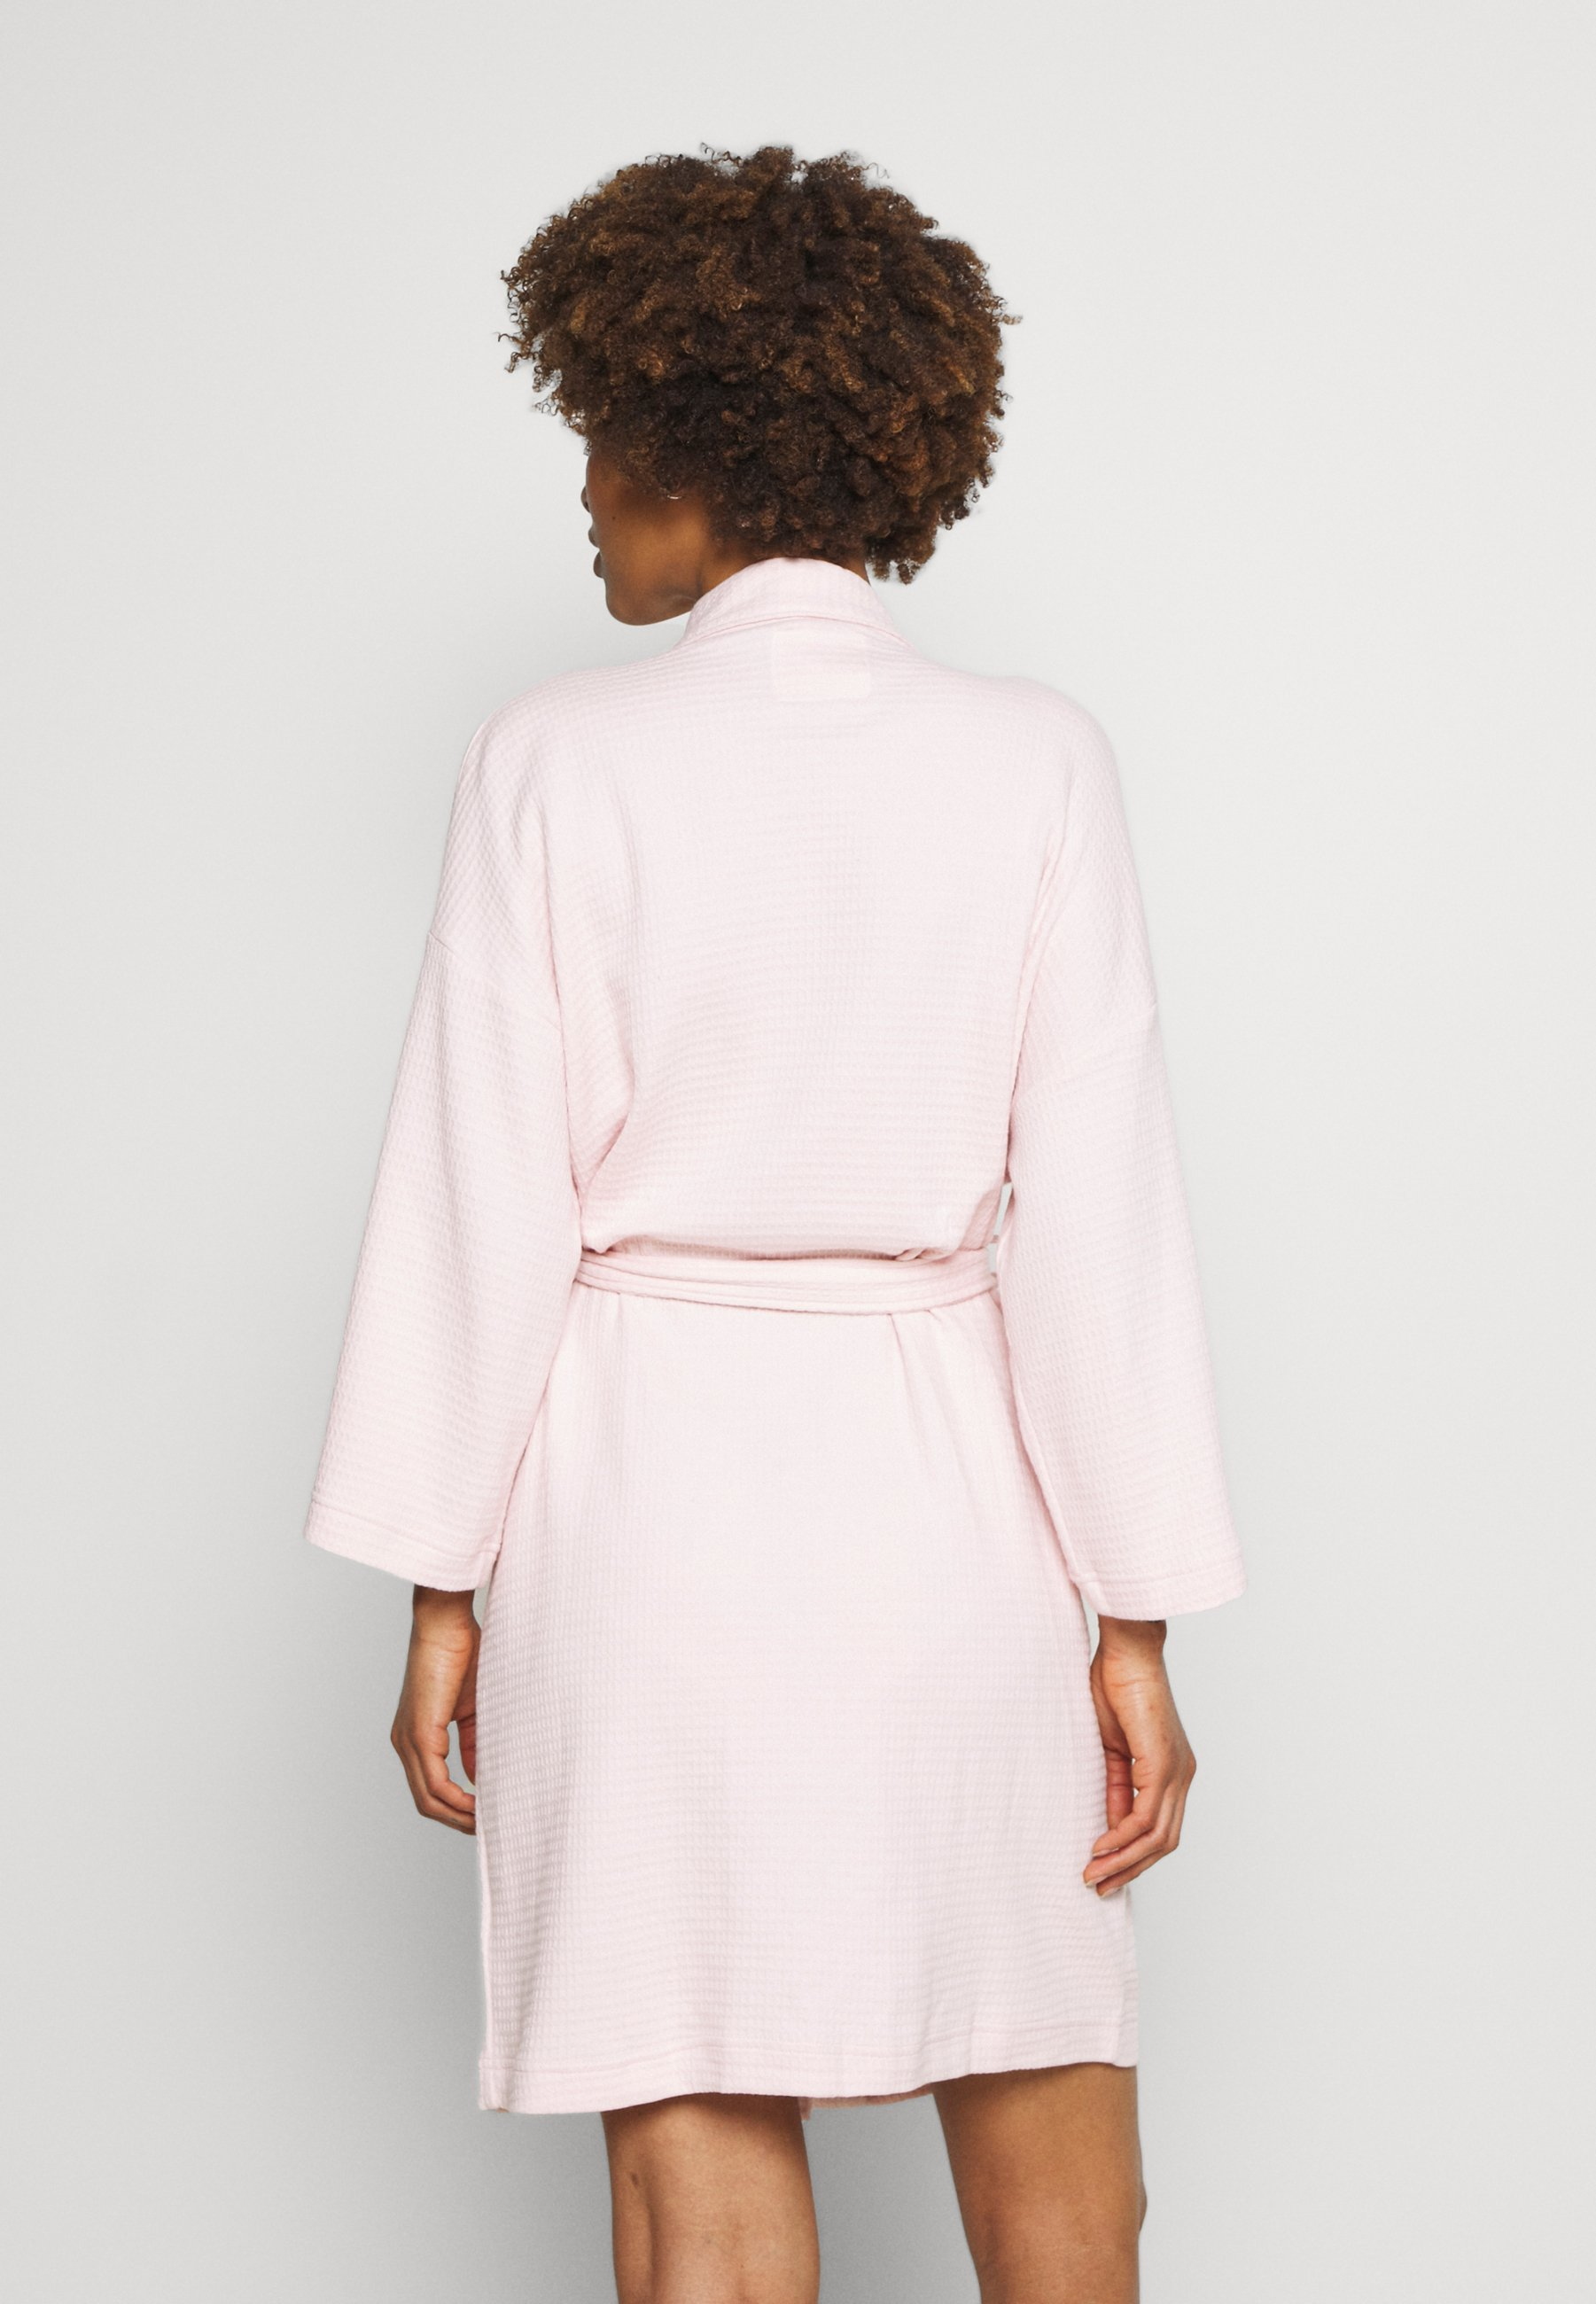 Donna DRESSING GOWN COVER UPS - Accappatoio